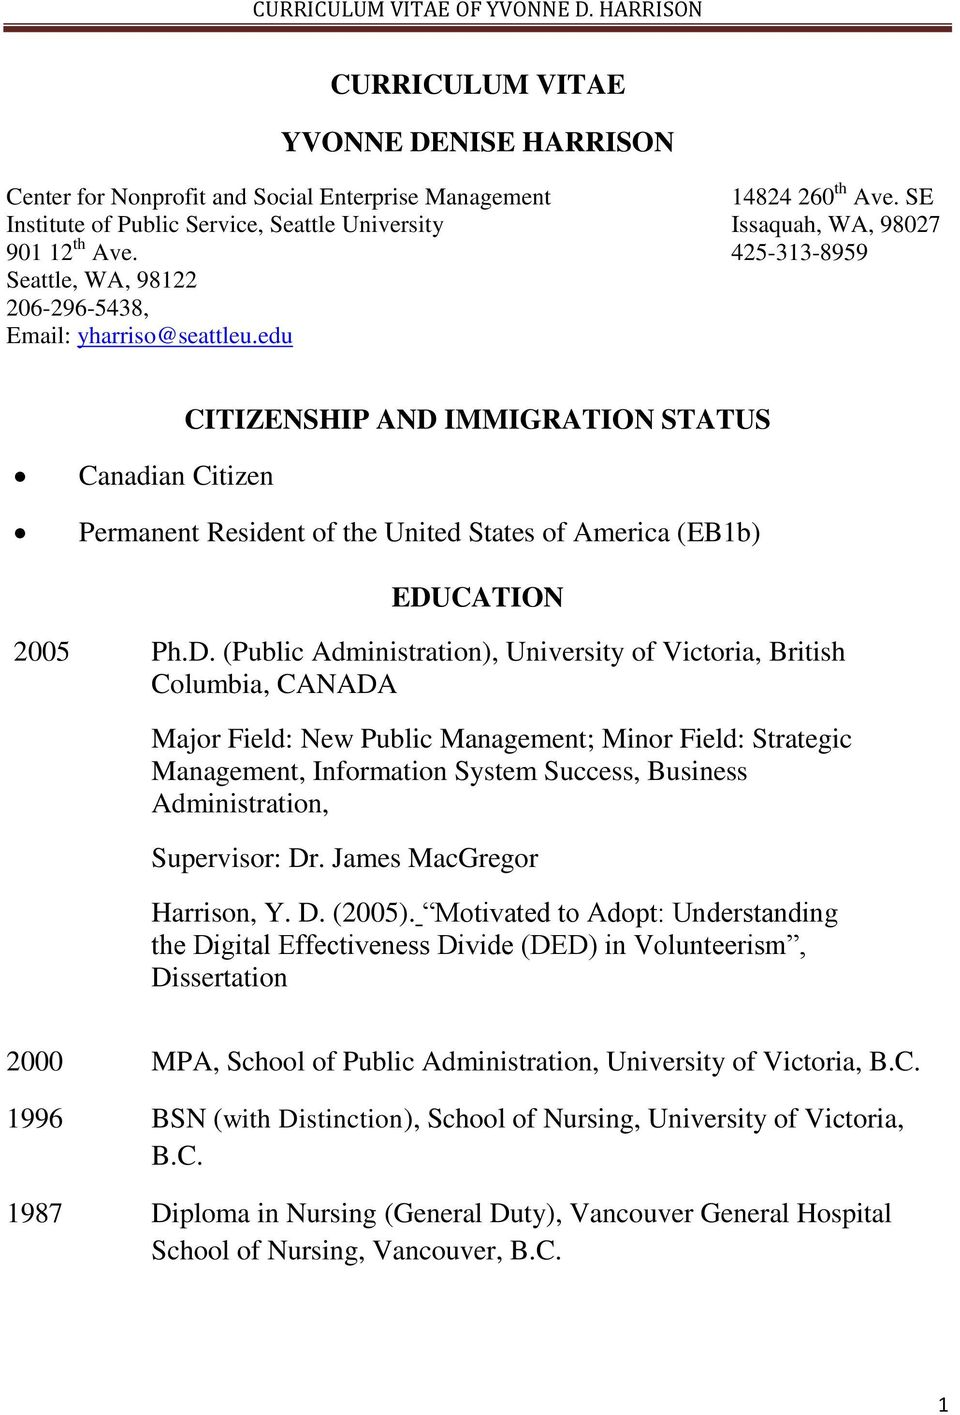 CURRICULUM VITAE YVONNE DENISE HARRISON CITIZENSHIP AND IMMIGRATION